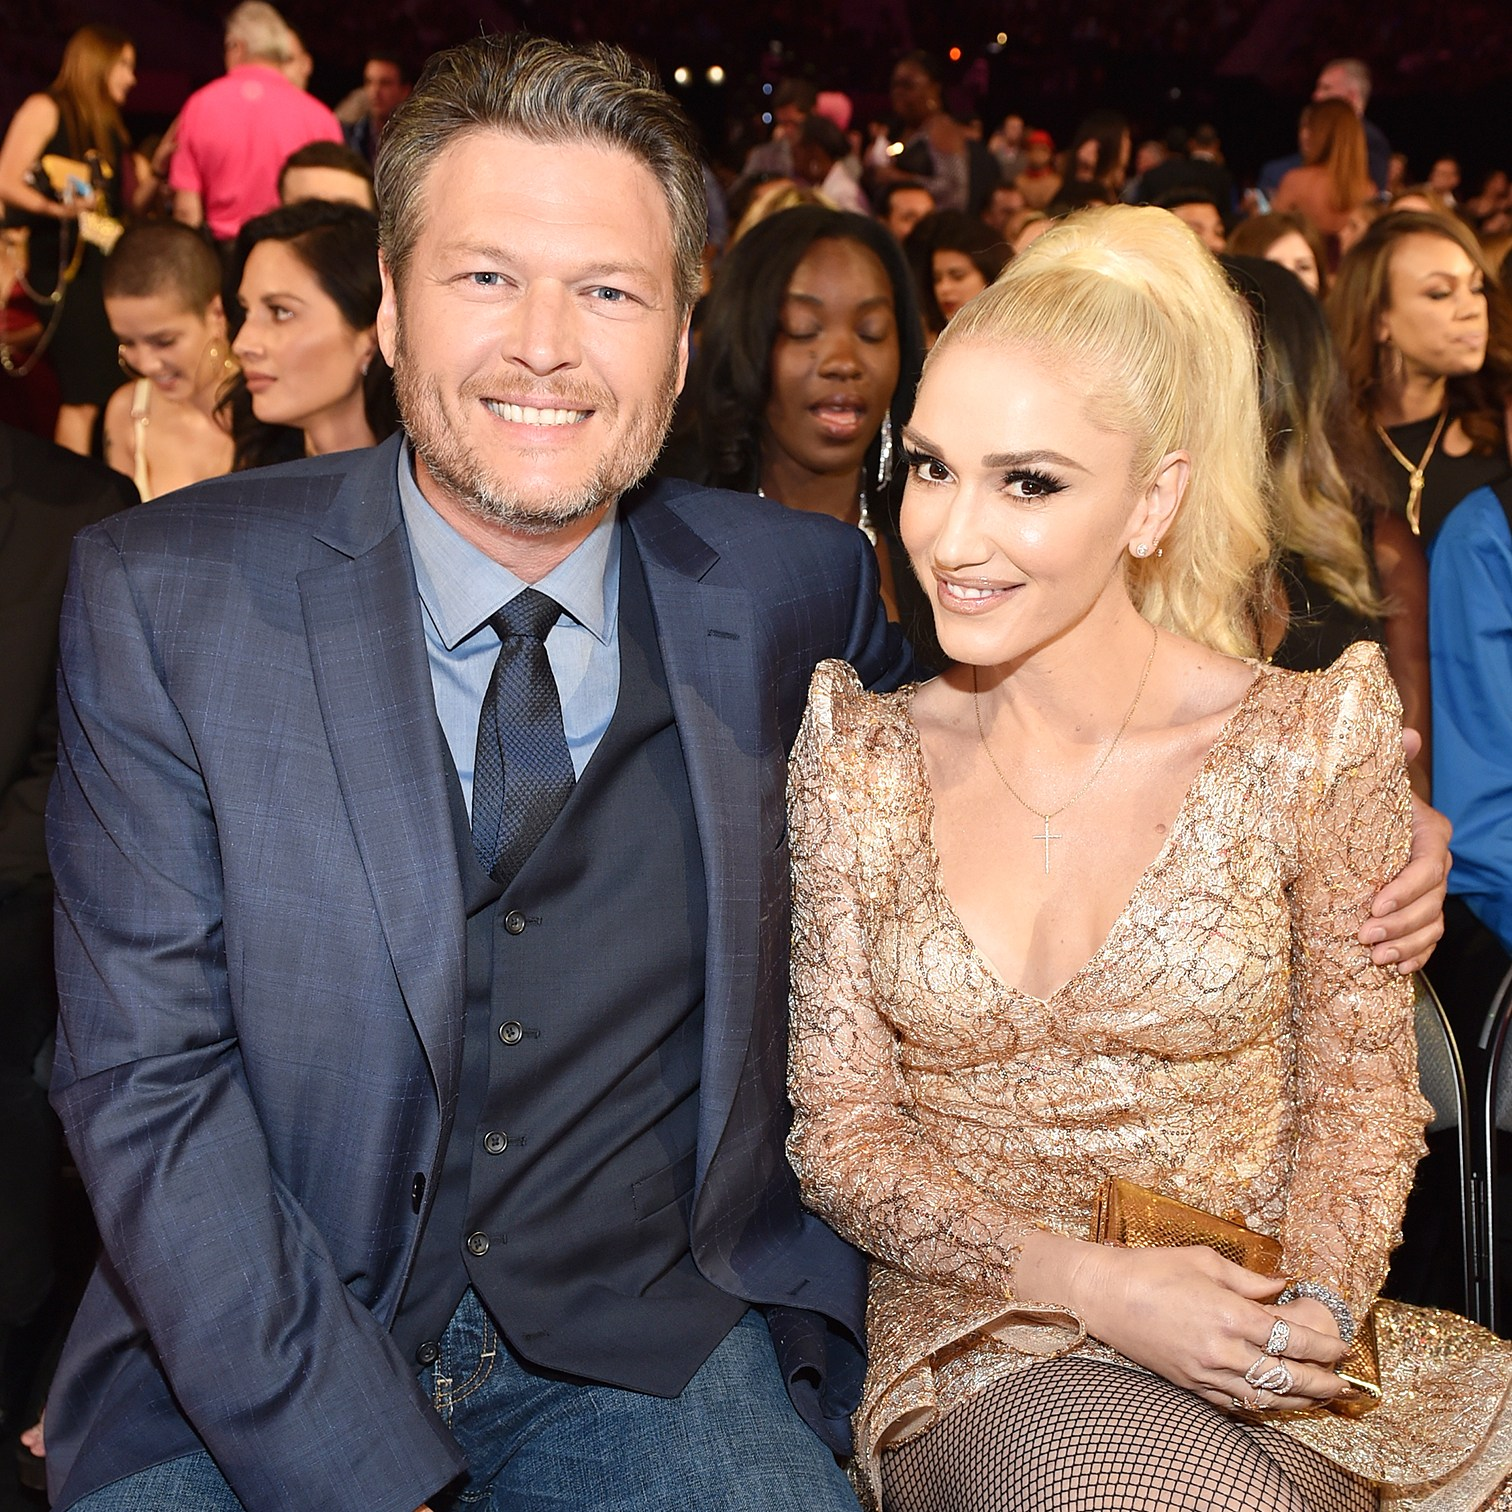 Blake Shelton Gwen Stefani Billboard Music Awards 2017